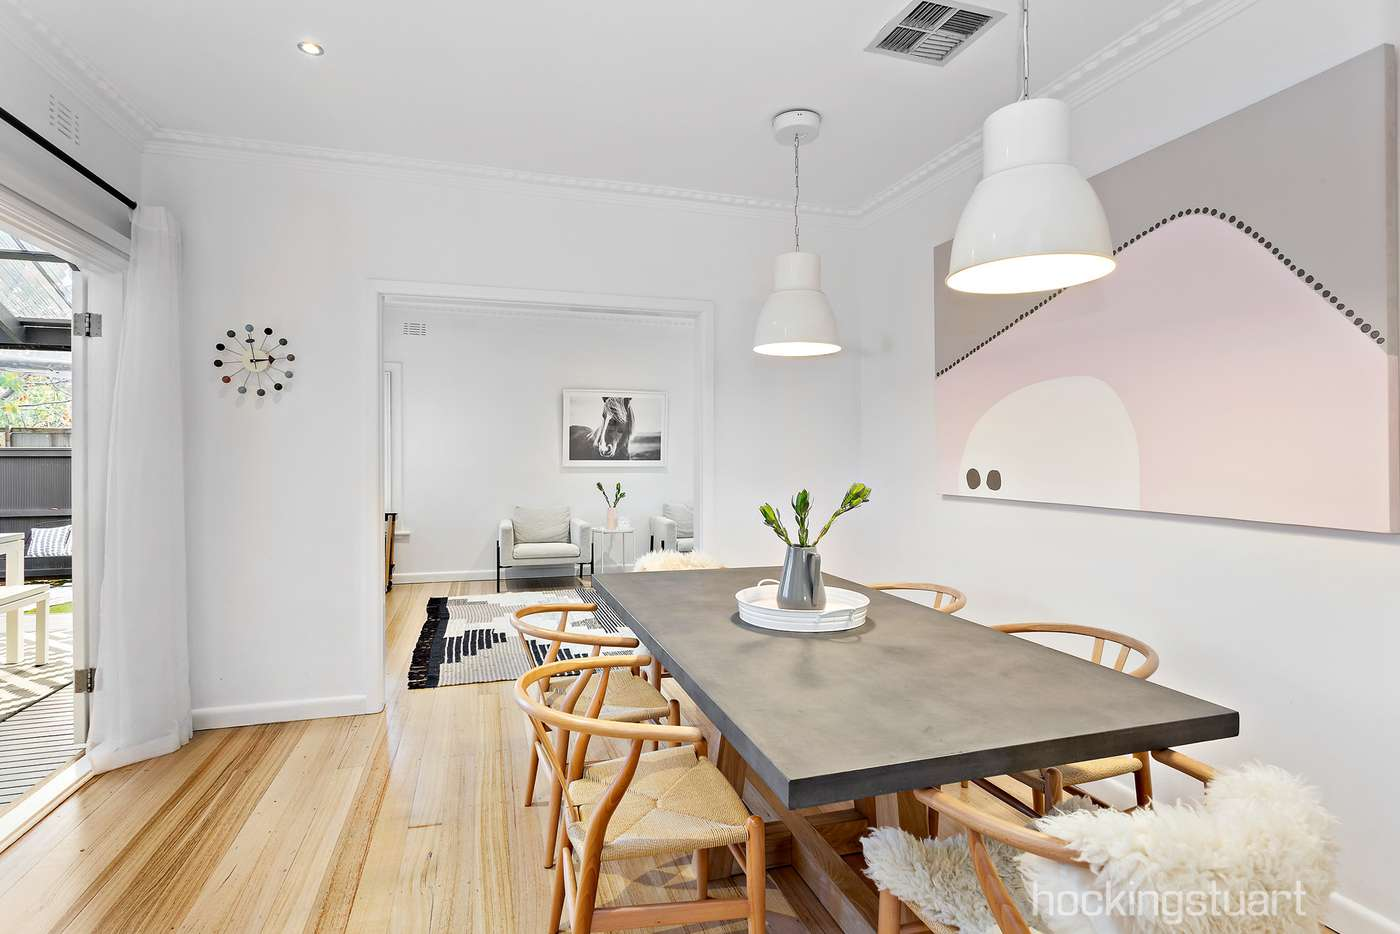 Fifth view of Homely house listing, 10 Peverill Street, Malvern East VIC 3145